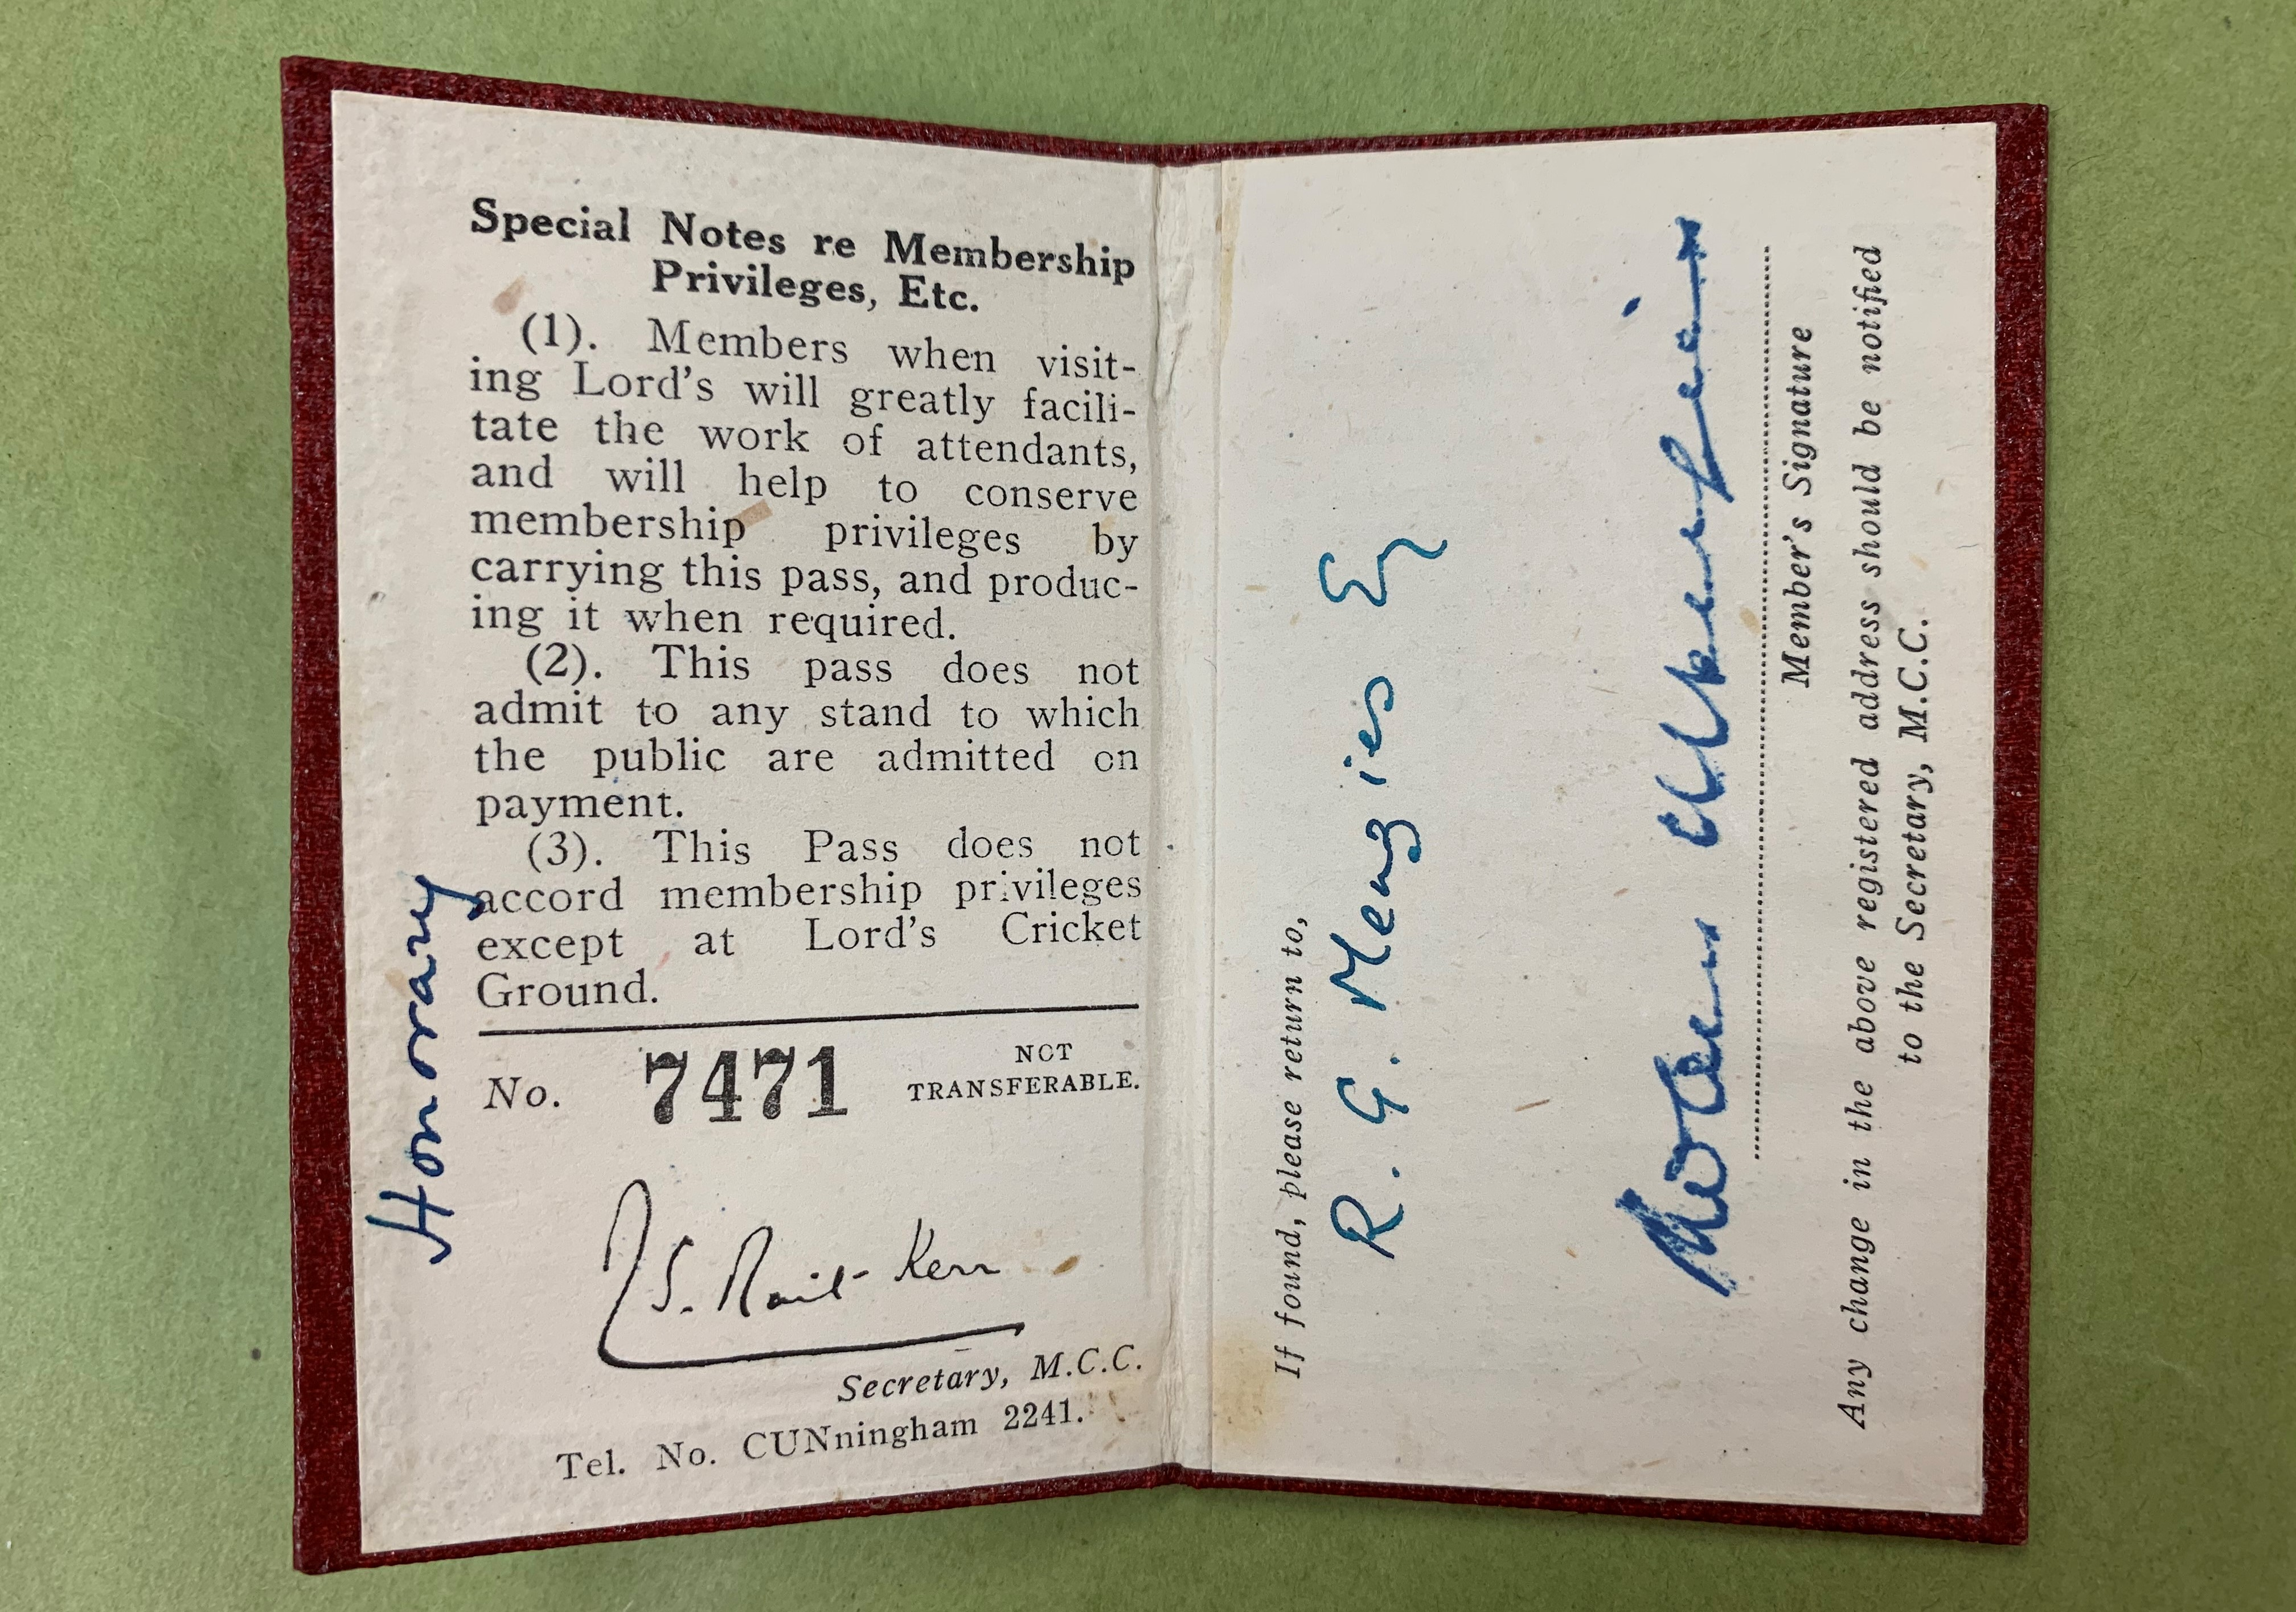 Membership card for the Melbourne Cricket Club held by Sir Robert Menzies